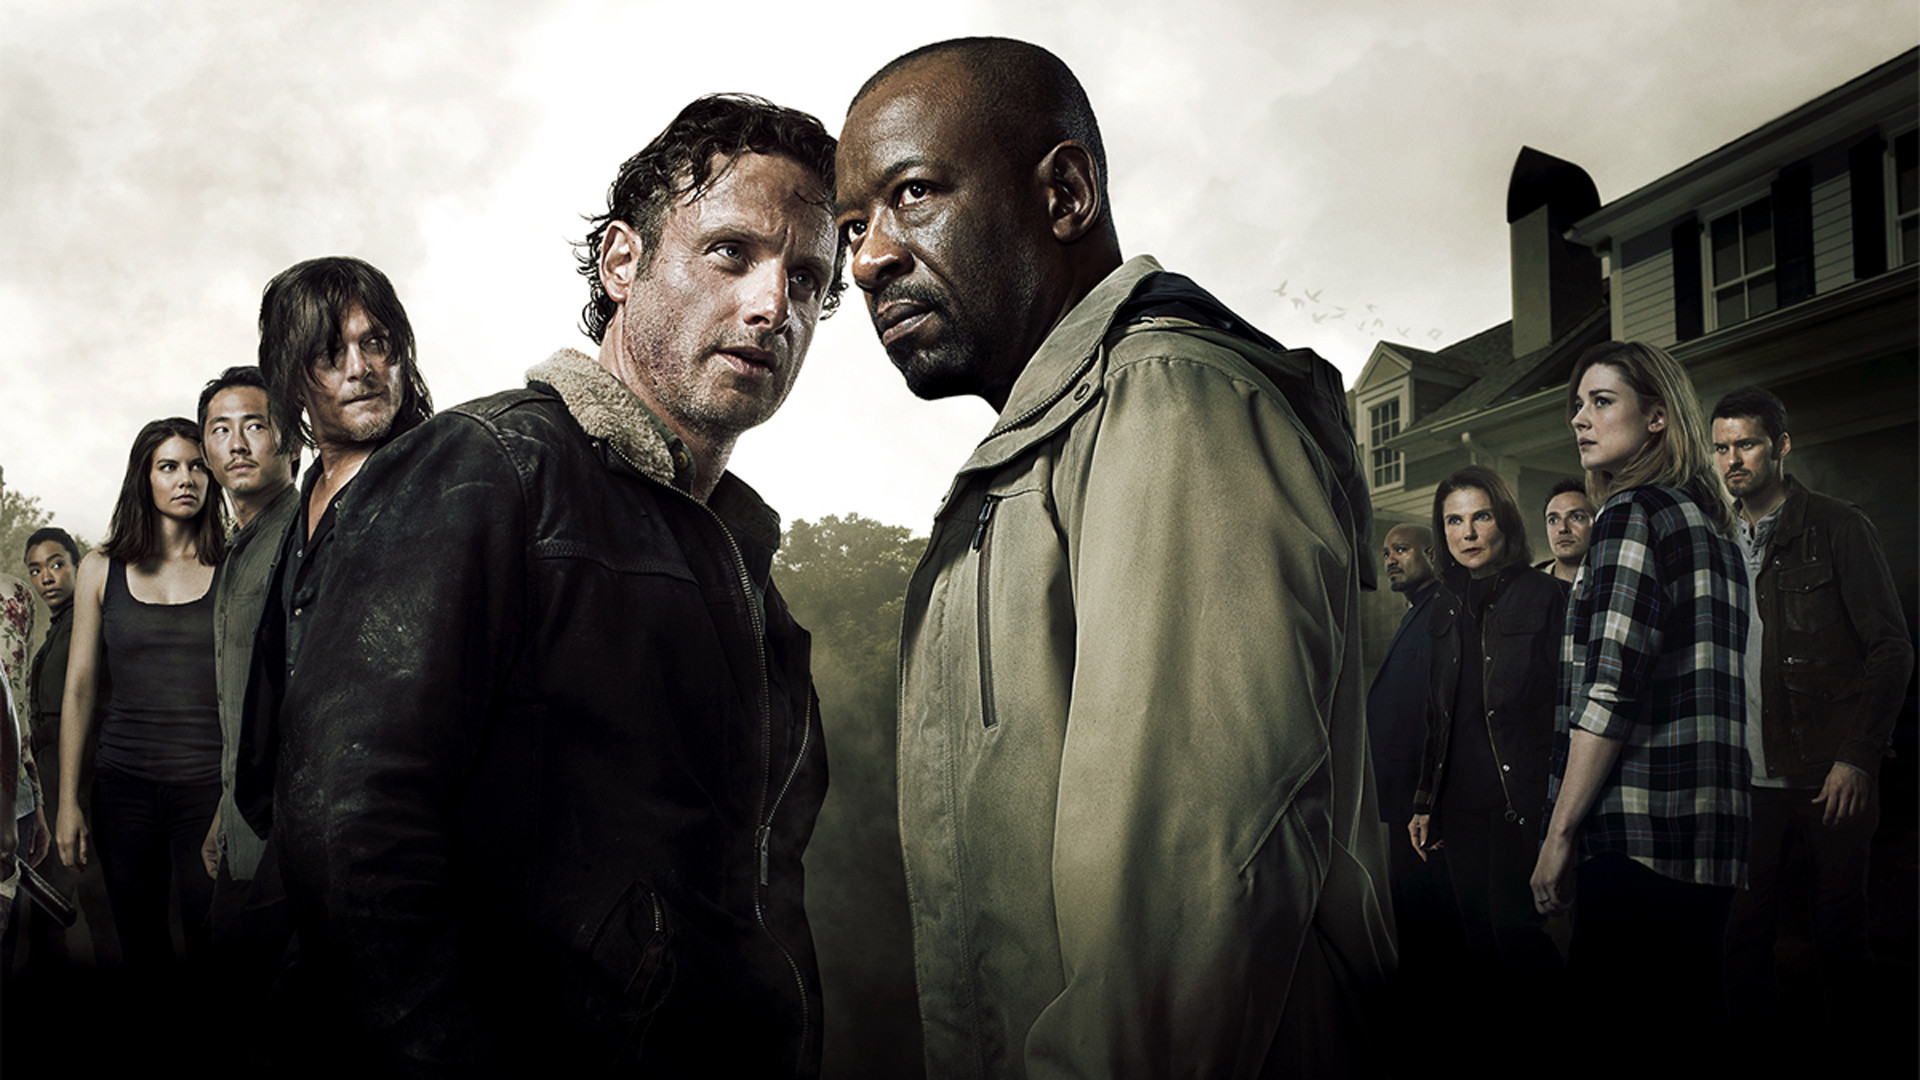 the walking dead full season 6 download